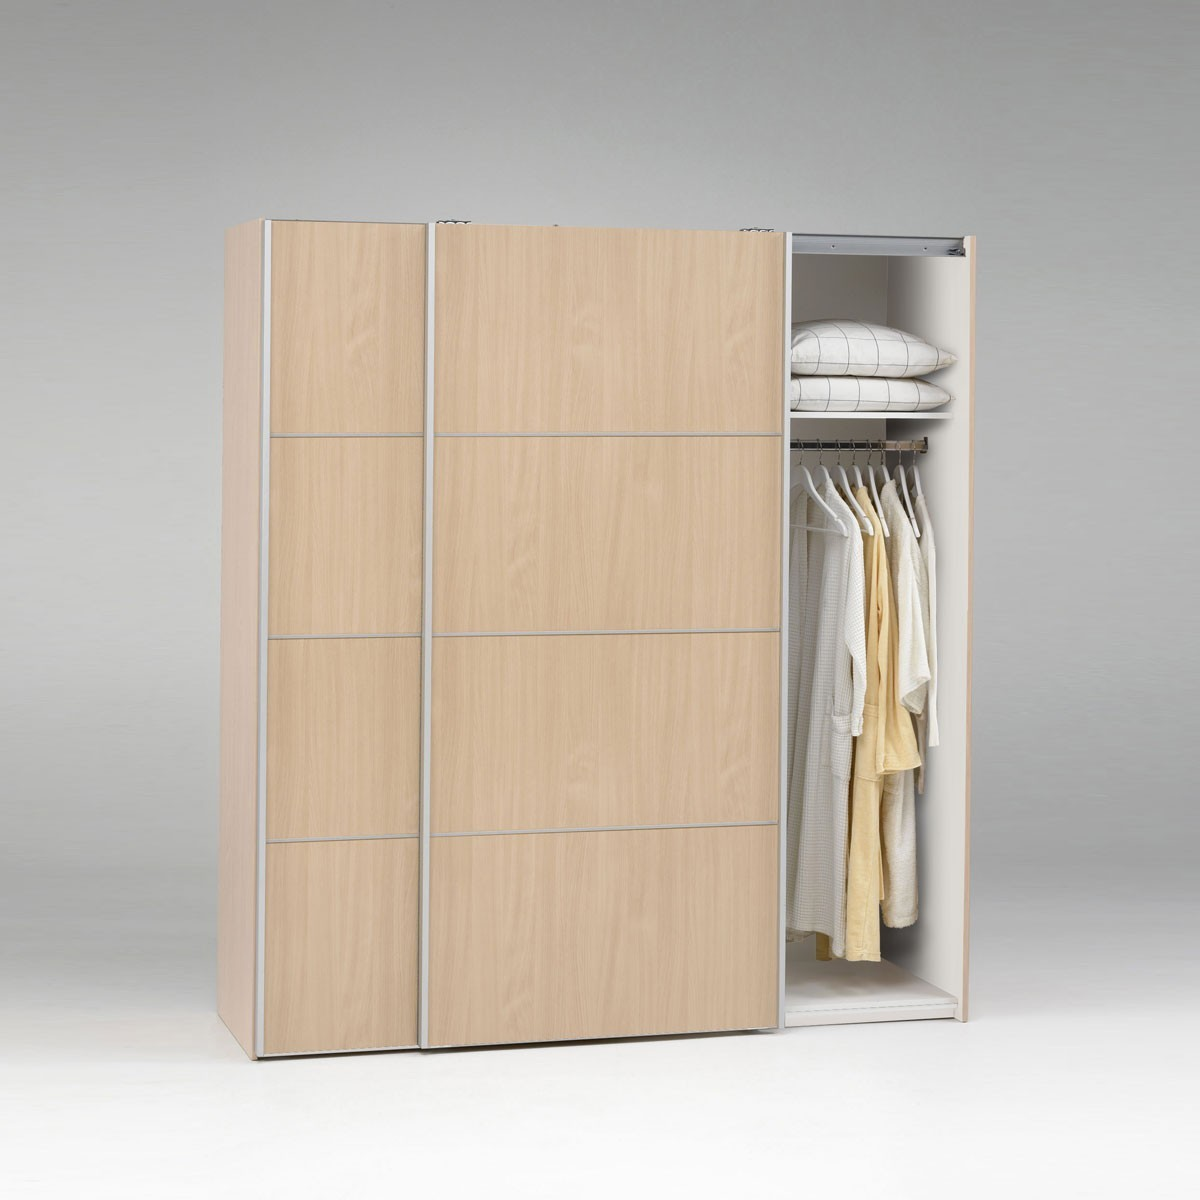 kleiderschrank schrank schwebet renschrank match in ahorn 180 x 200 cm ebay. Black Bedroom Furniture Sets. Home Design Ideas